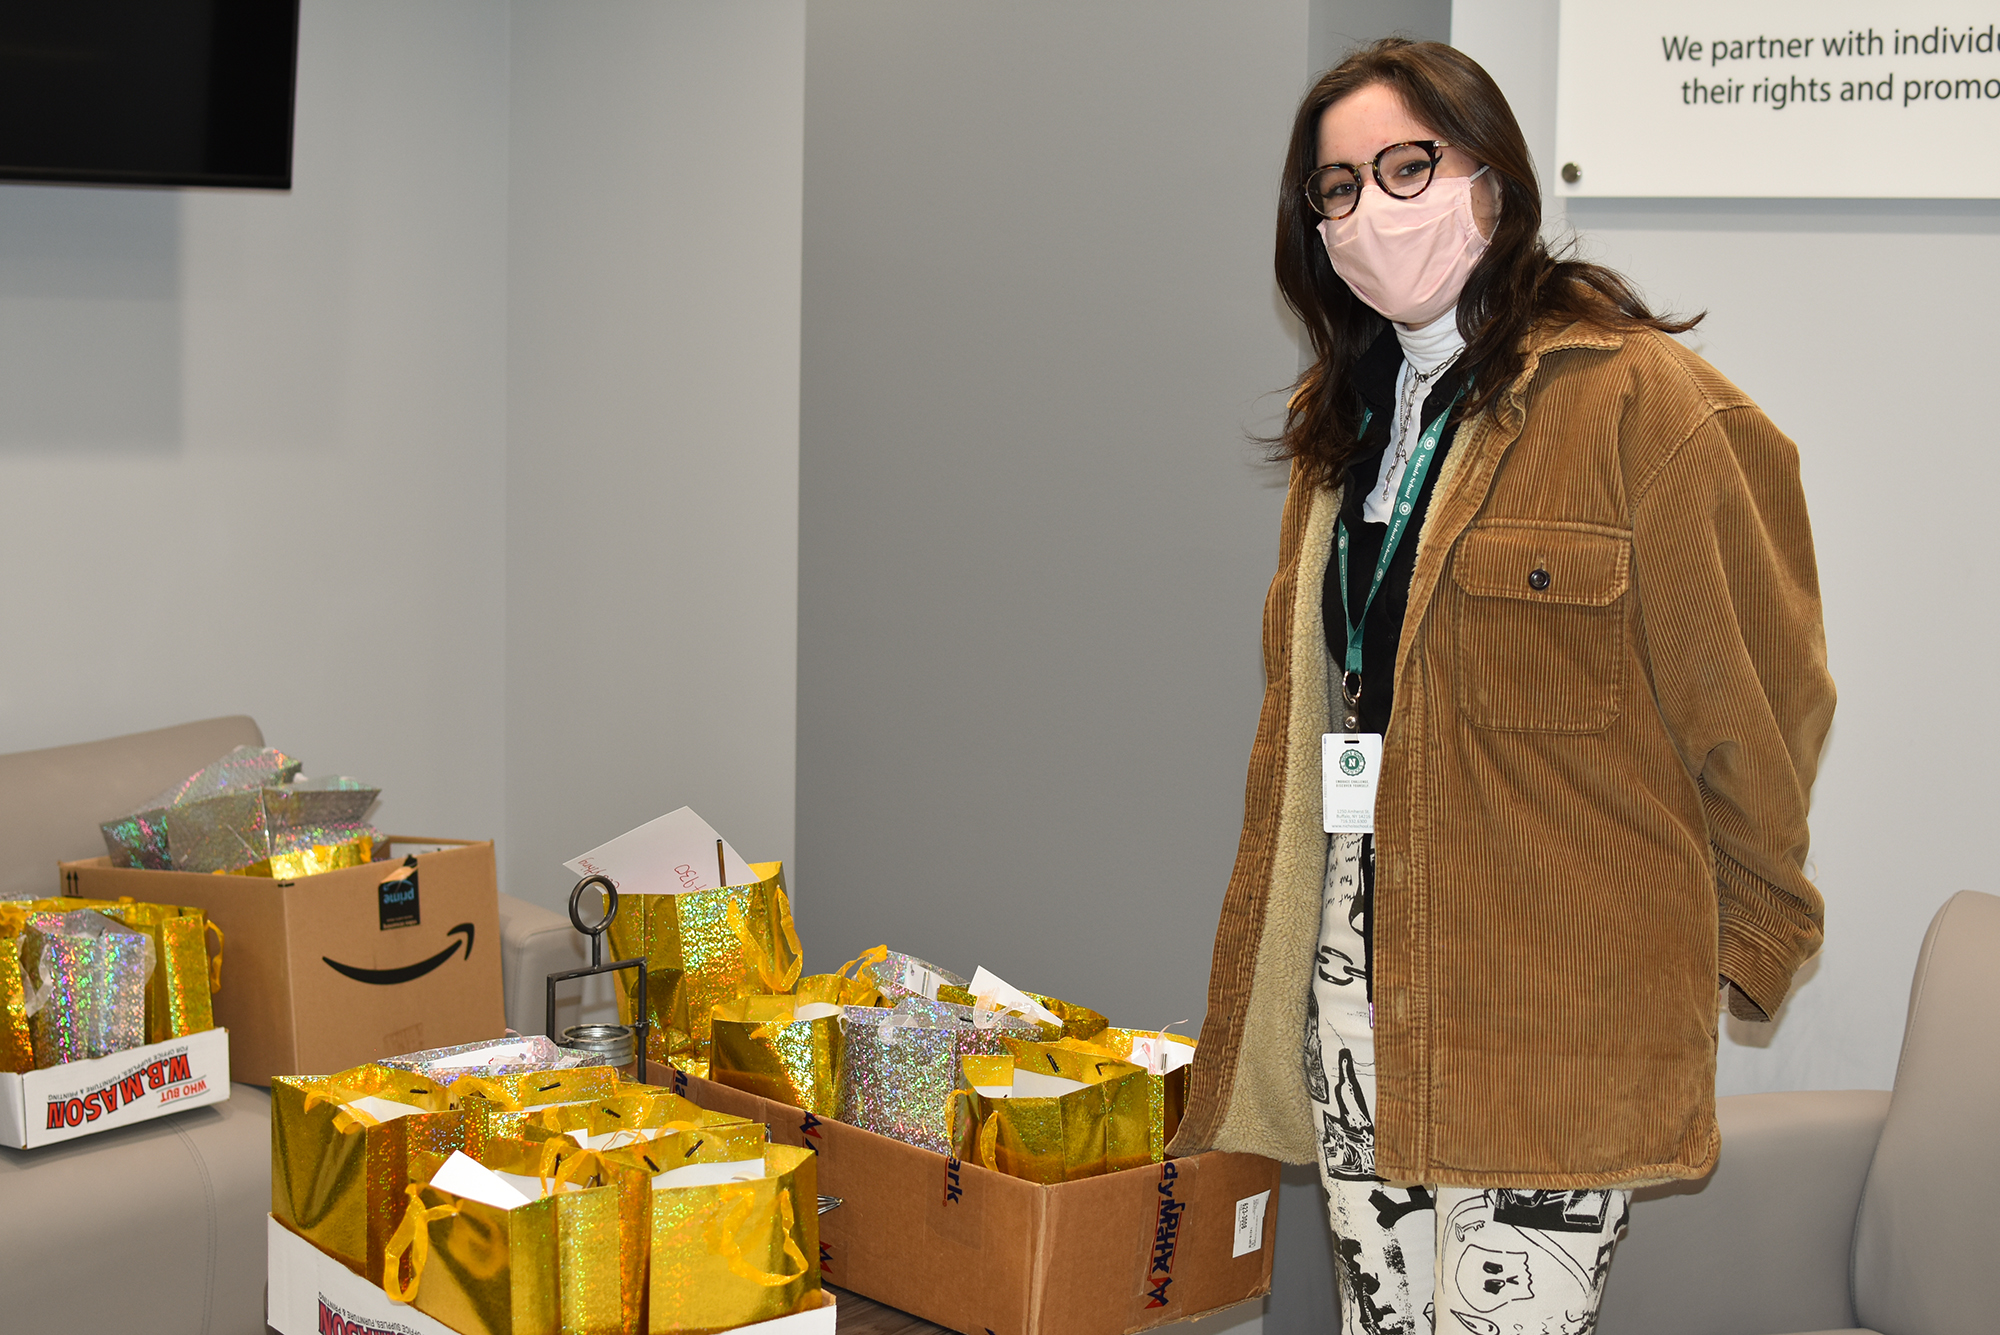 A Nichols student poses with the gift bags she donated